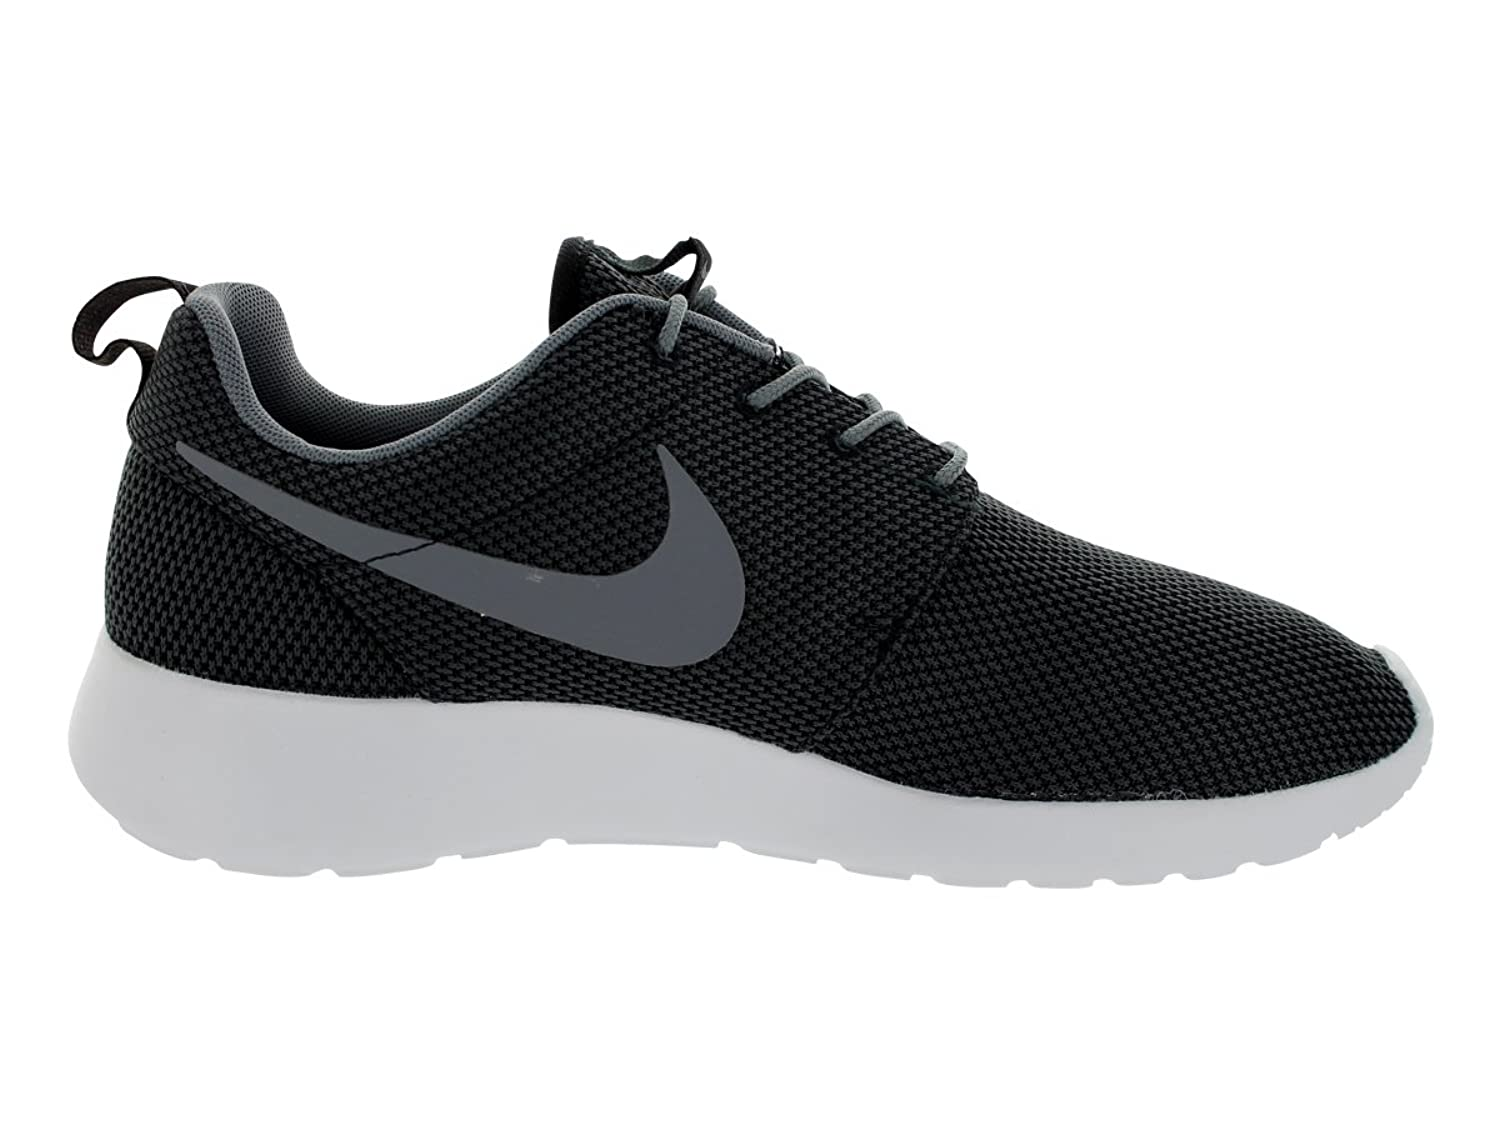 ssvnm Nike Roshe Run Black Grey Mens Trainers Size 12 UK: Amazon.co.uk